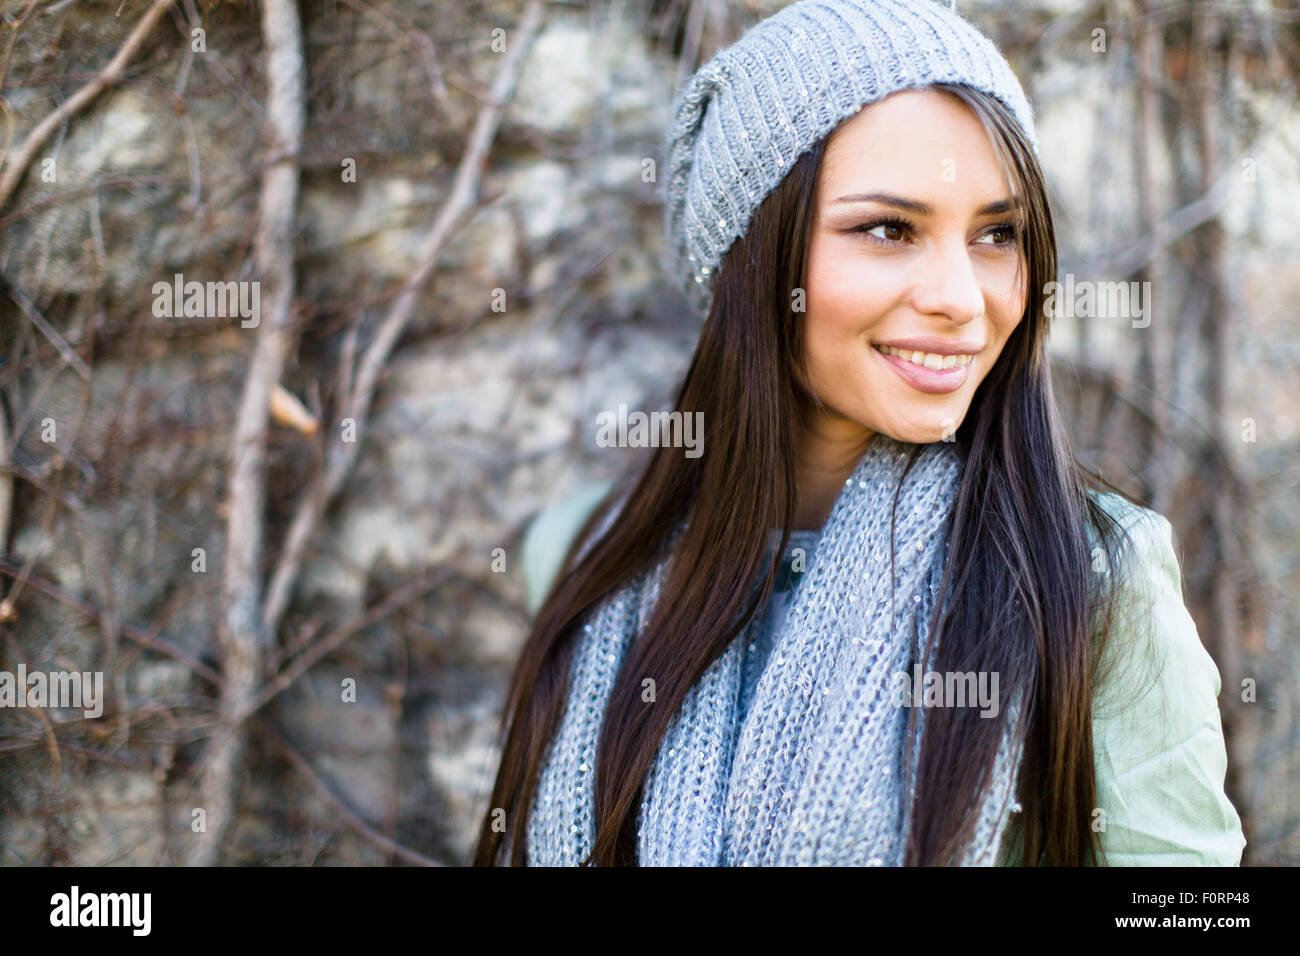 Portrait of a smiling  young woman in winter - Stock Image